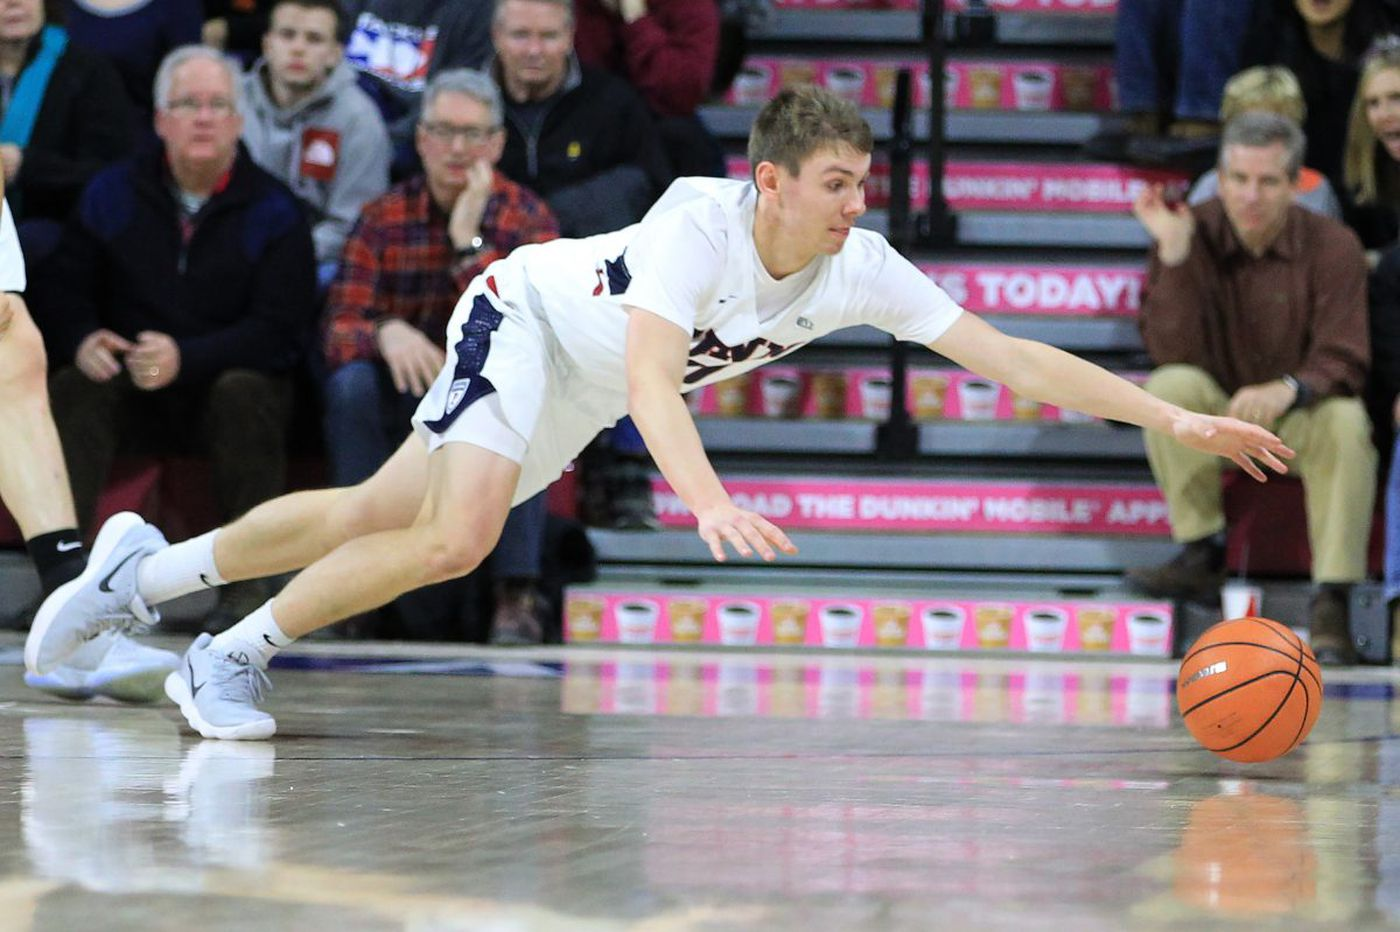 Big Ivy League game coming up for Penn, just not must-win | City Six Observations